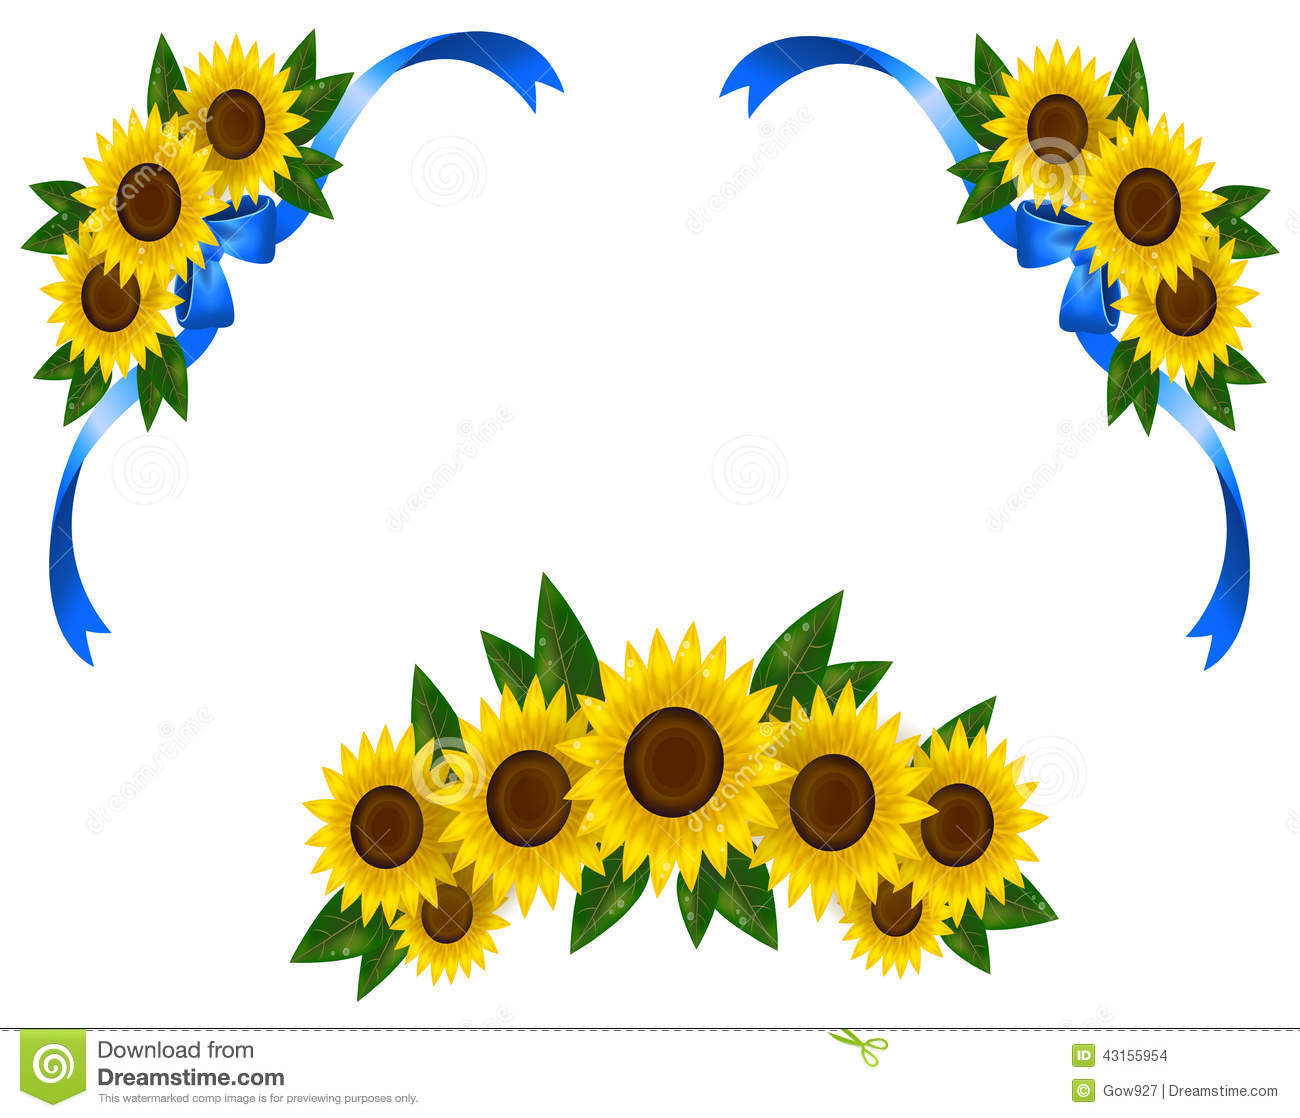 Sunflower Wallpaper Border